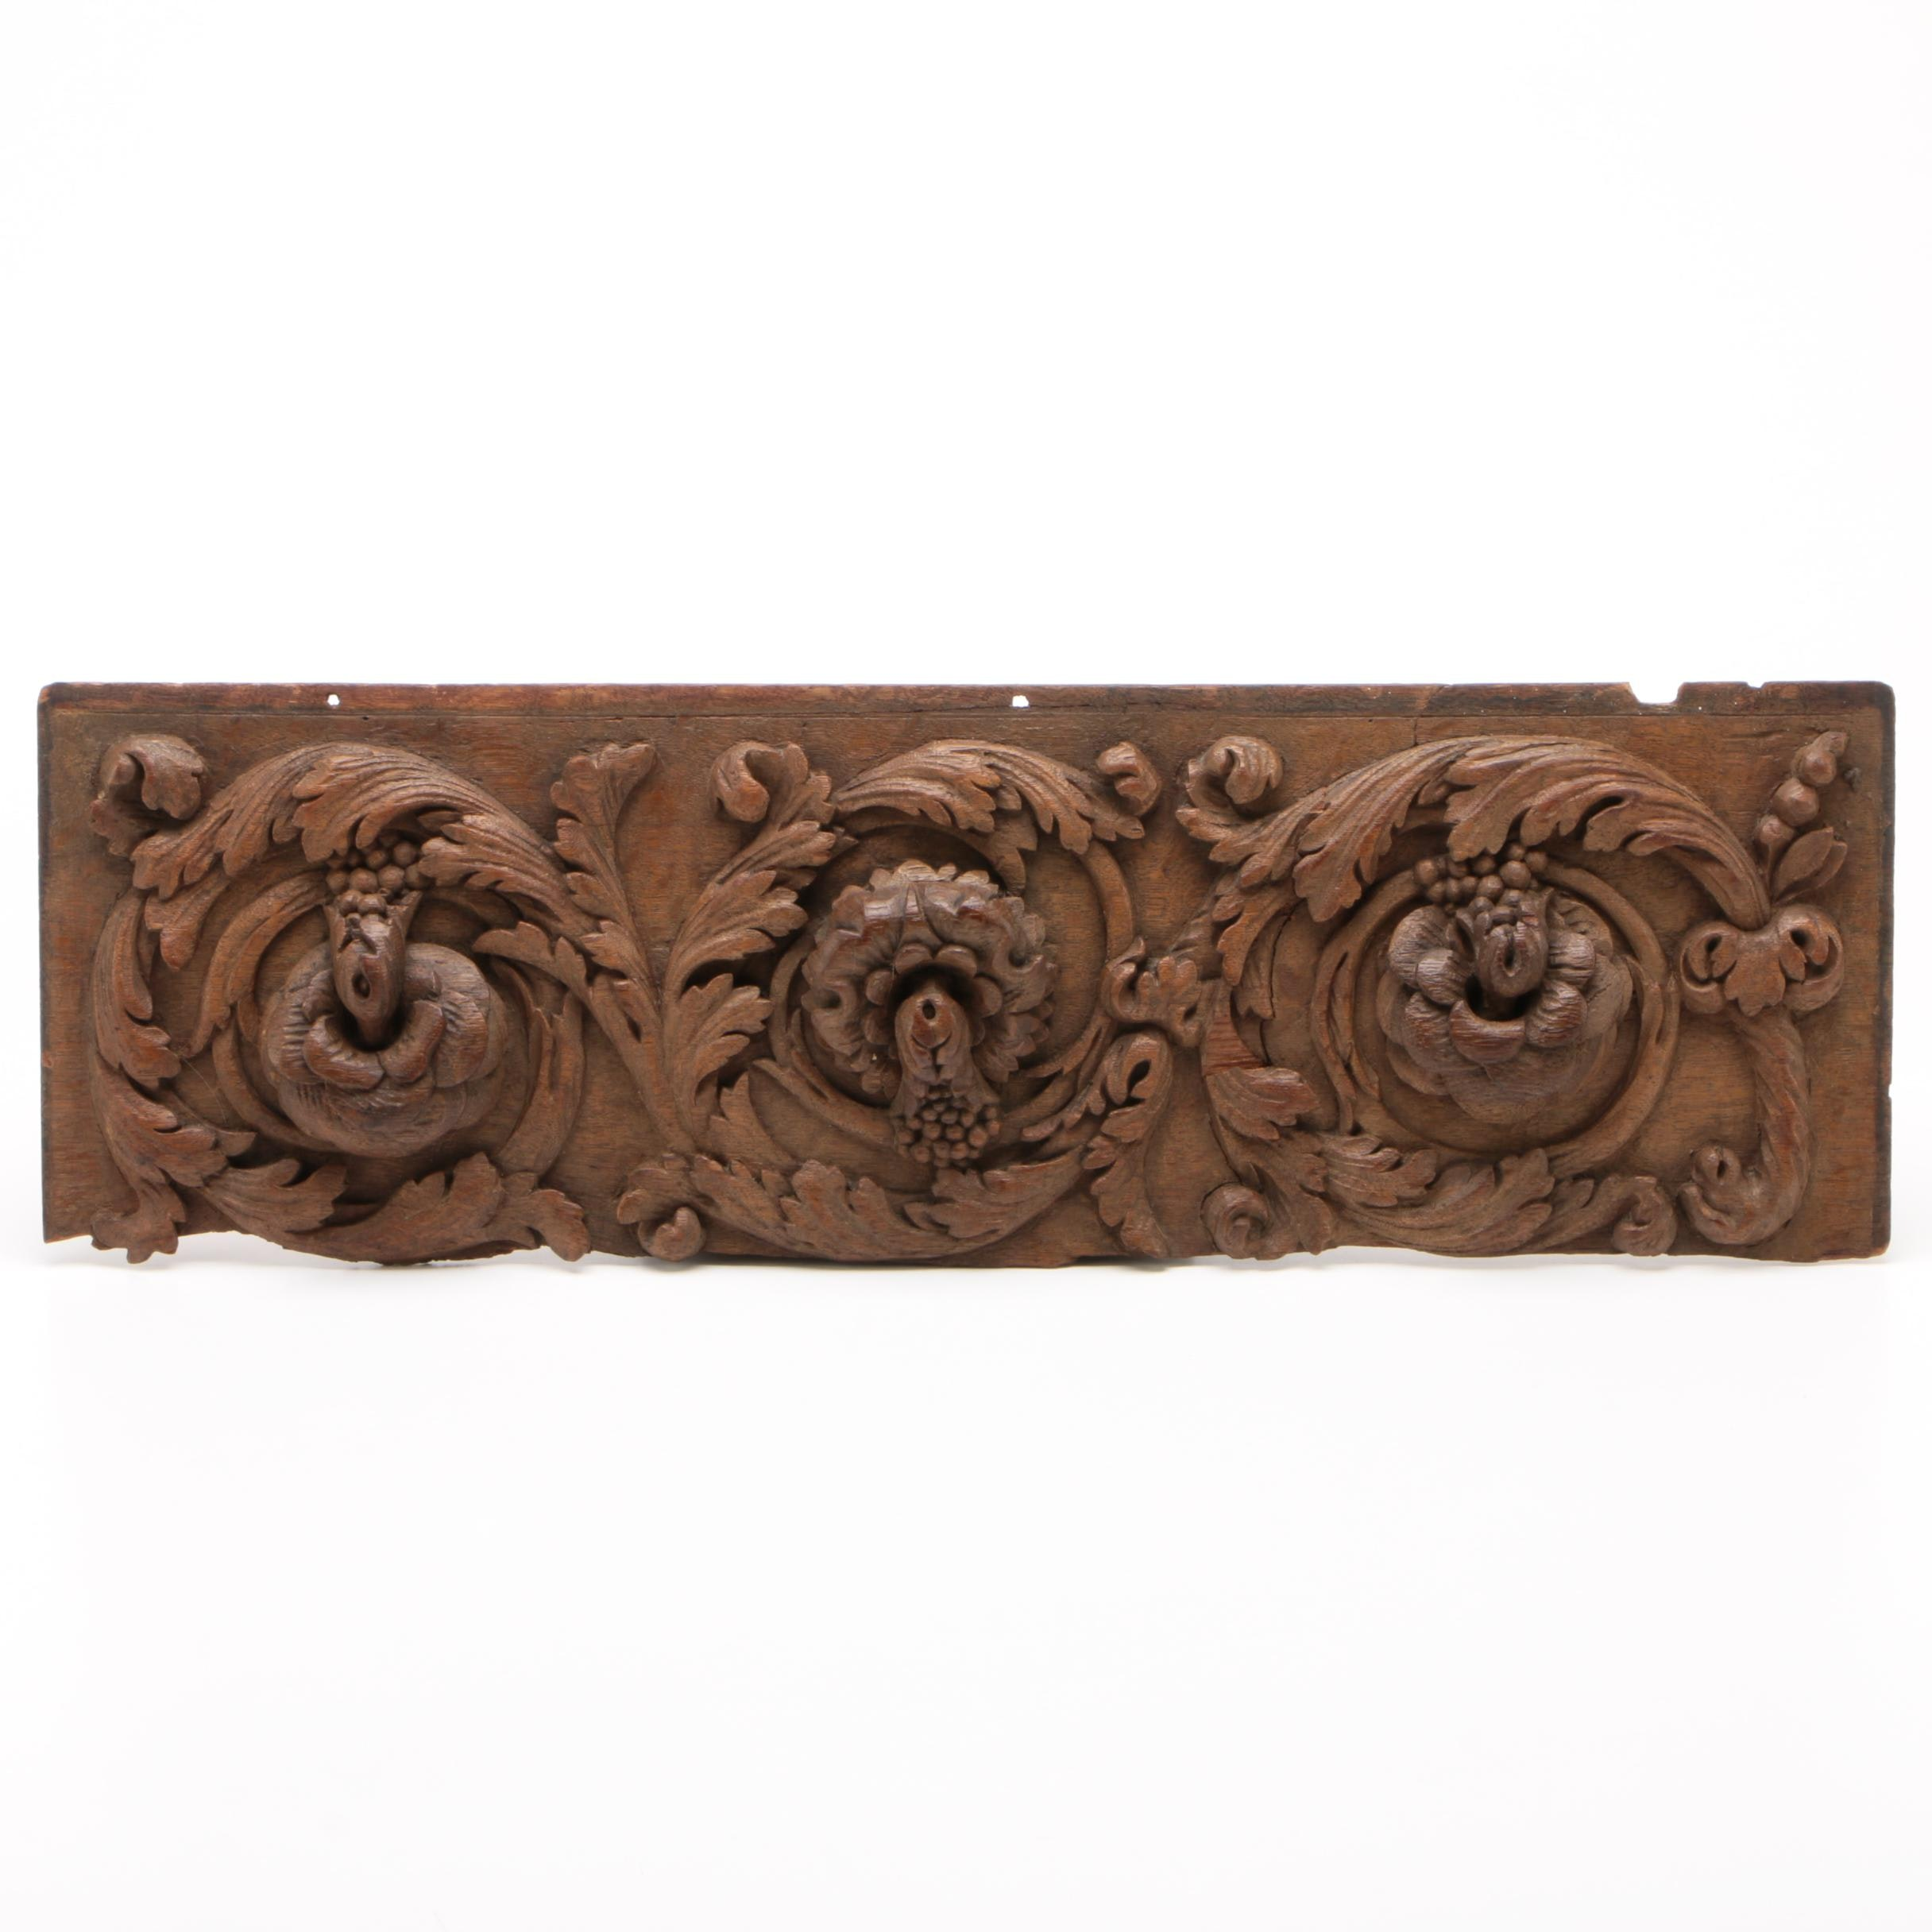 Carved Walnut Floral and Acanthus Wall Panel, Early 20th Century